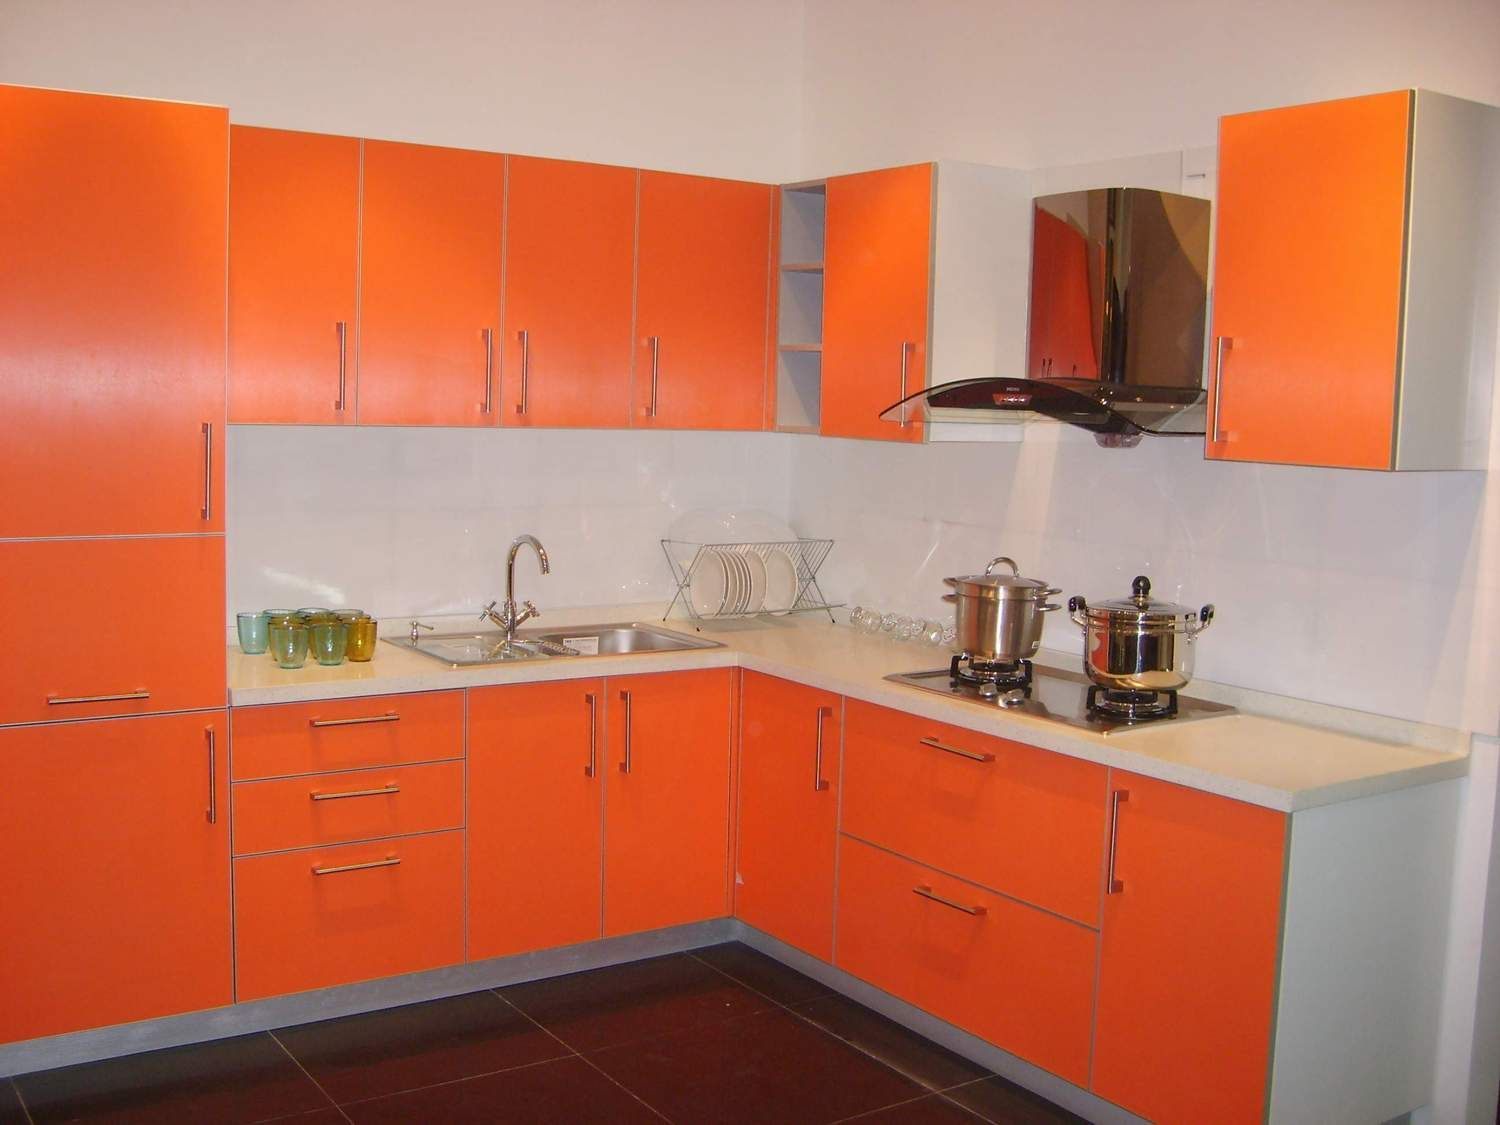 Orange Kitchen White Cabinets orange and white kitchen cabinets design ideas | kitchen design